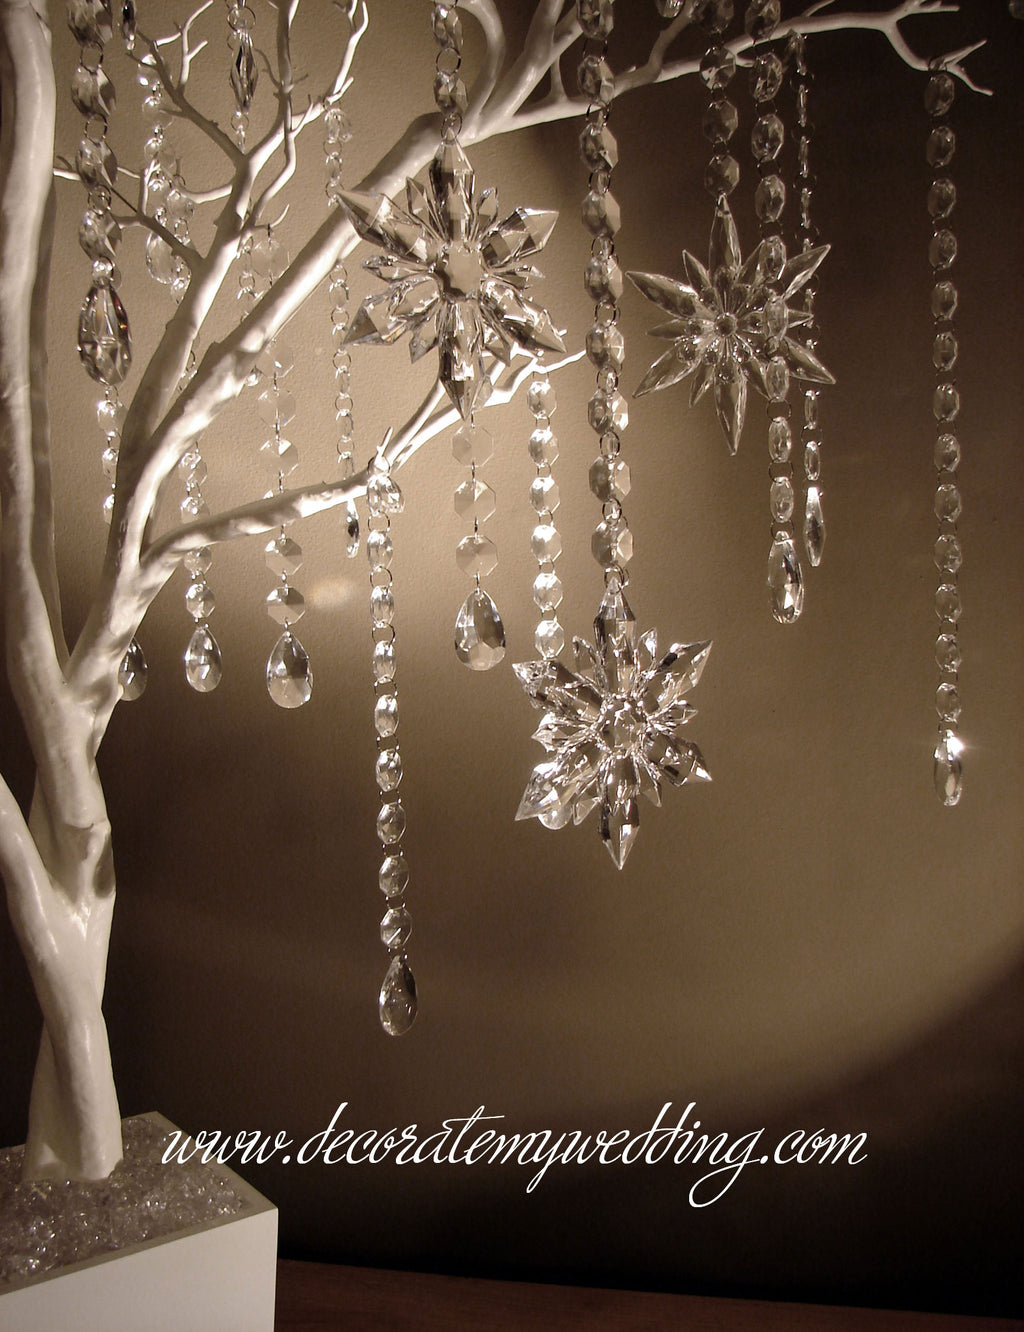 This snowflake tree kit includes a tree, octagon bead strands and teardrops, and gorgeous sparkling acrylic snowflakes.